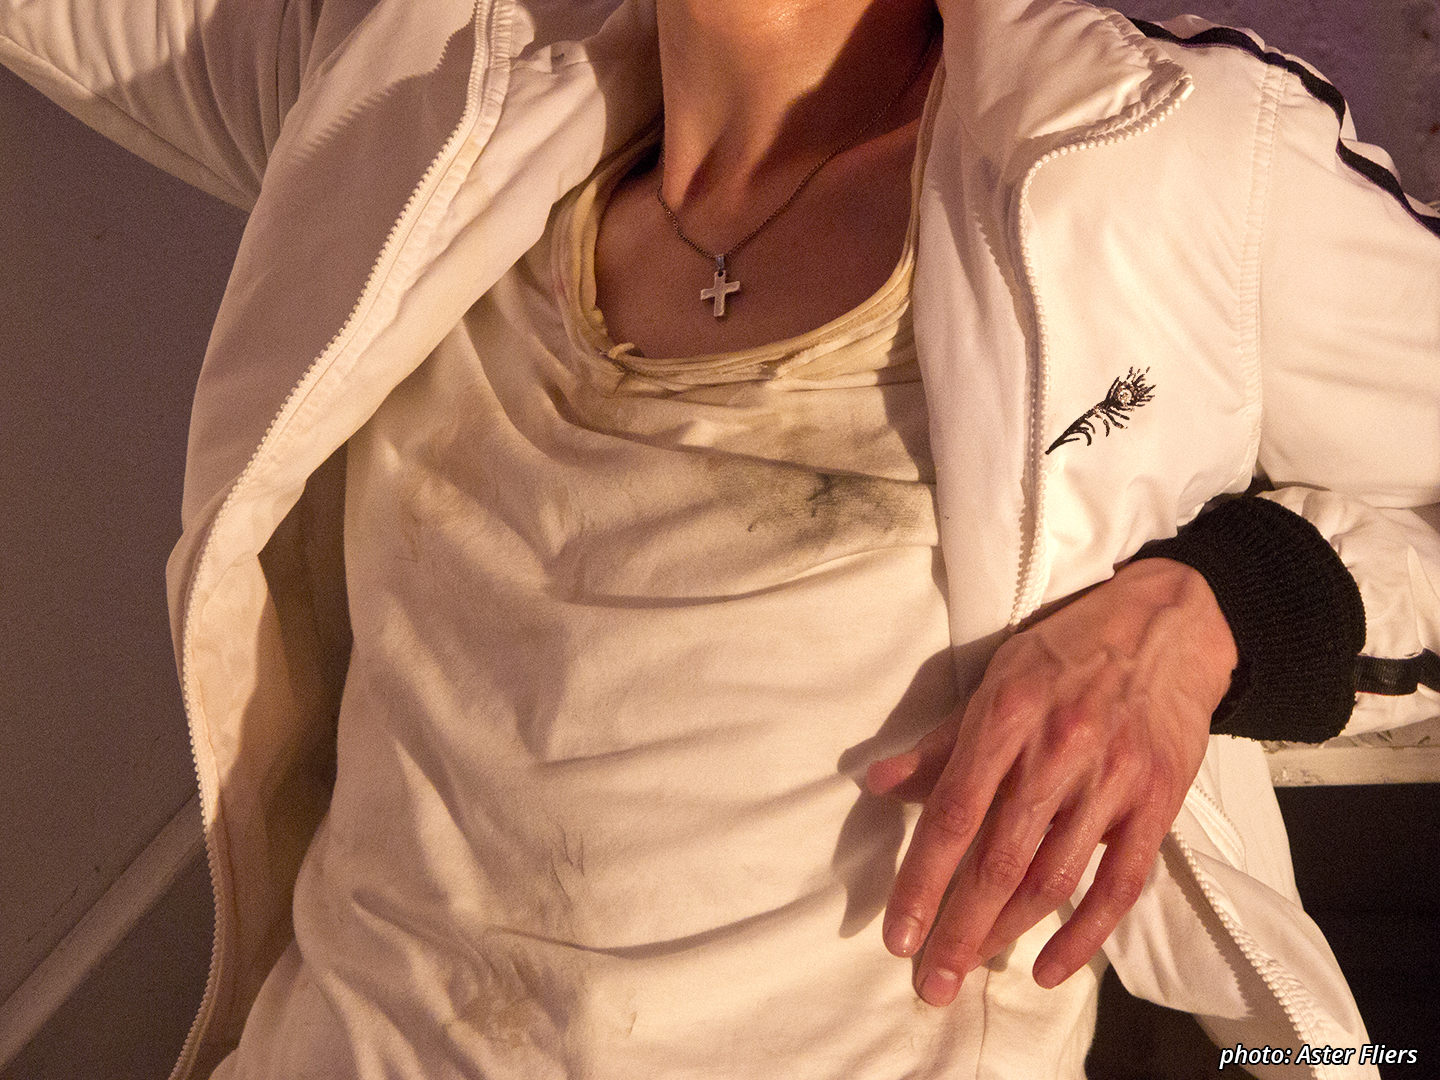 Close-up of a character's upper body, without the head. He's wearing a white, stained t-shirt and white jacket with black details. There's a small silver cross on a silver chain around the neck.